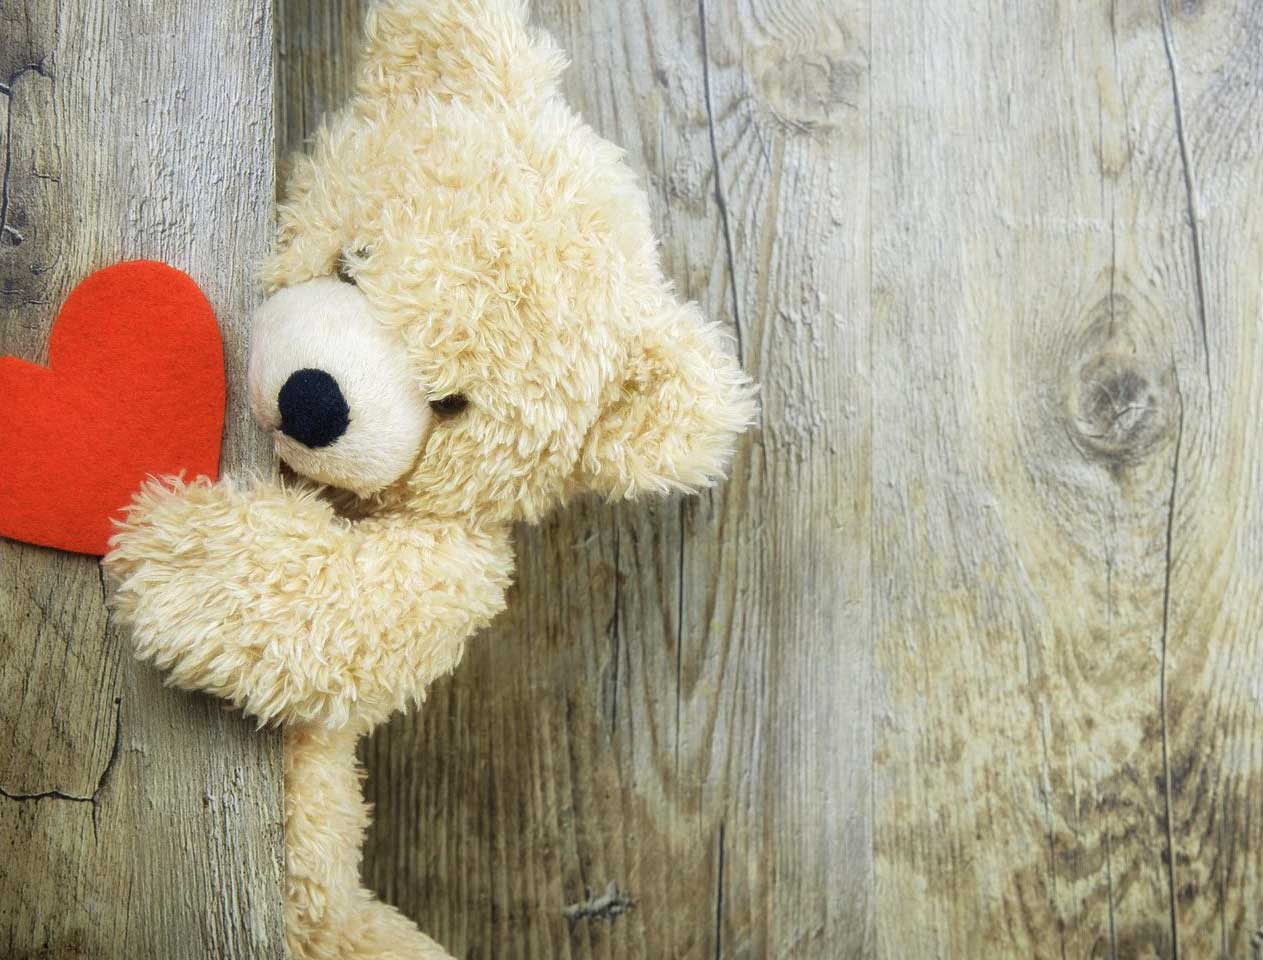 Beautiful Teddy Bear Images Pics HD Wallpaper Free Download